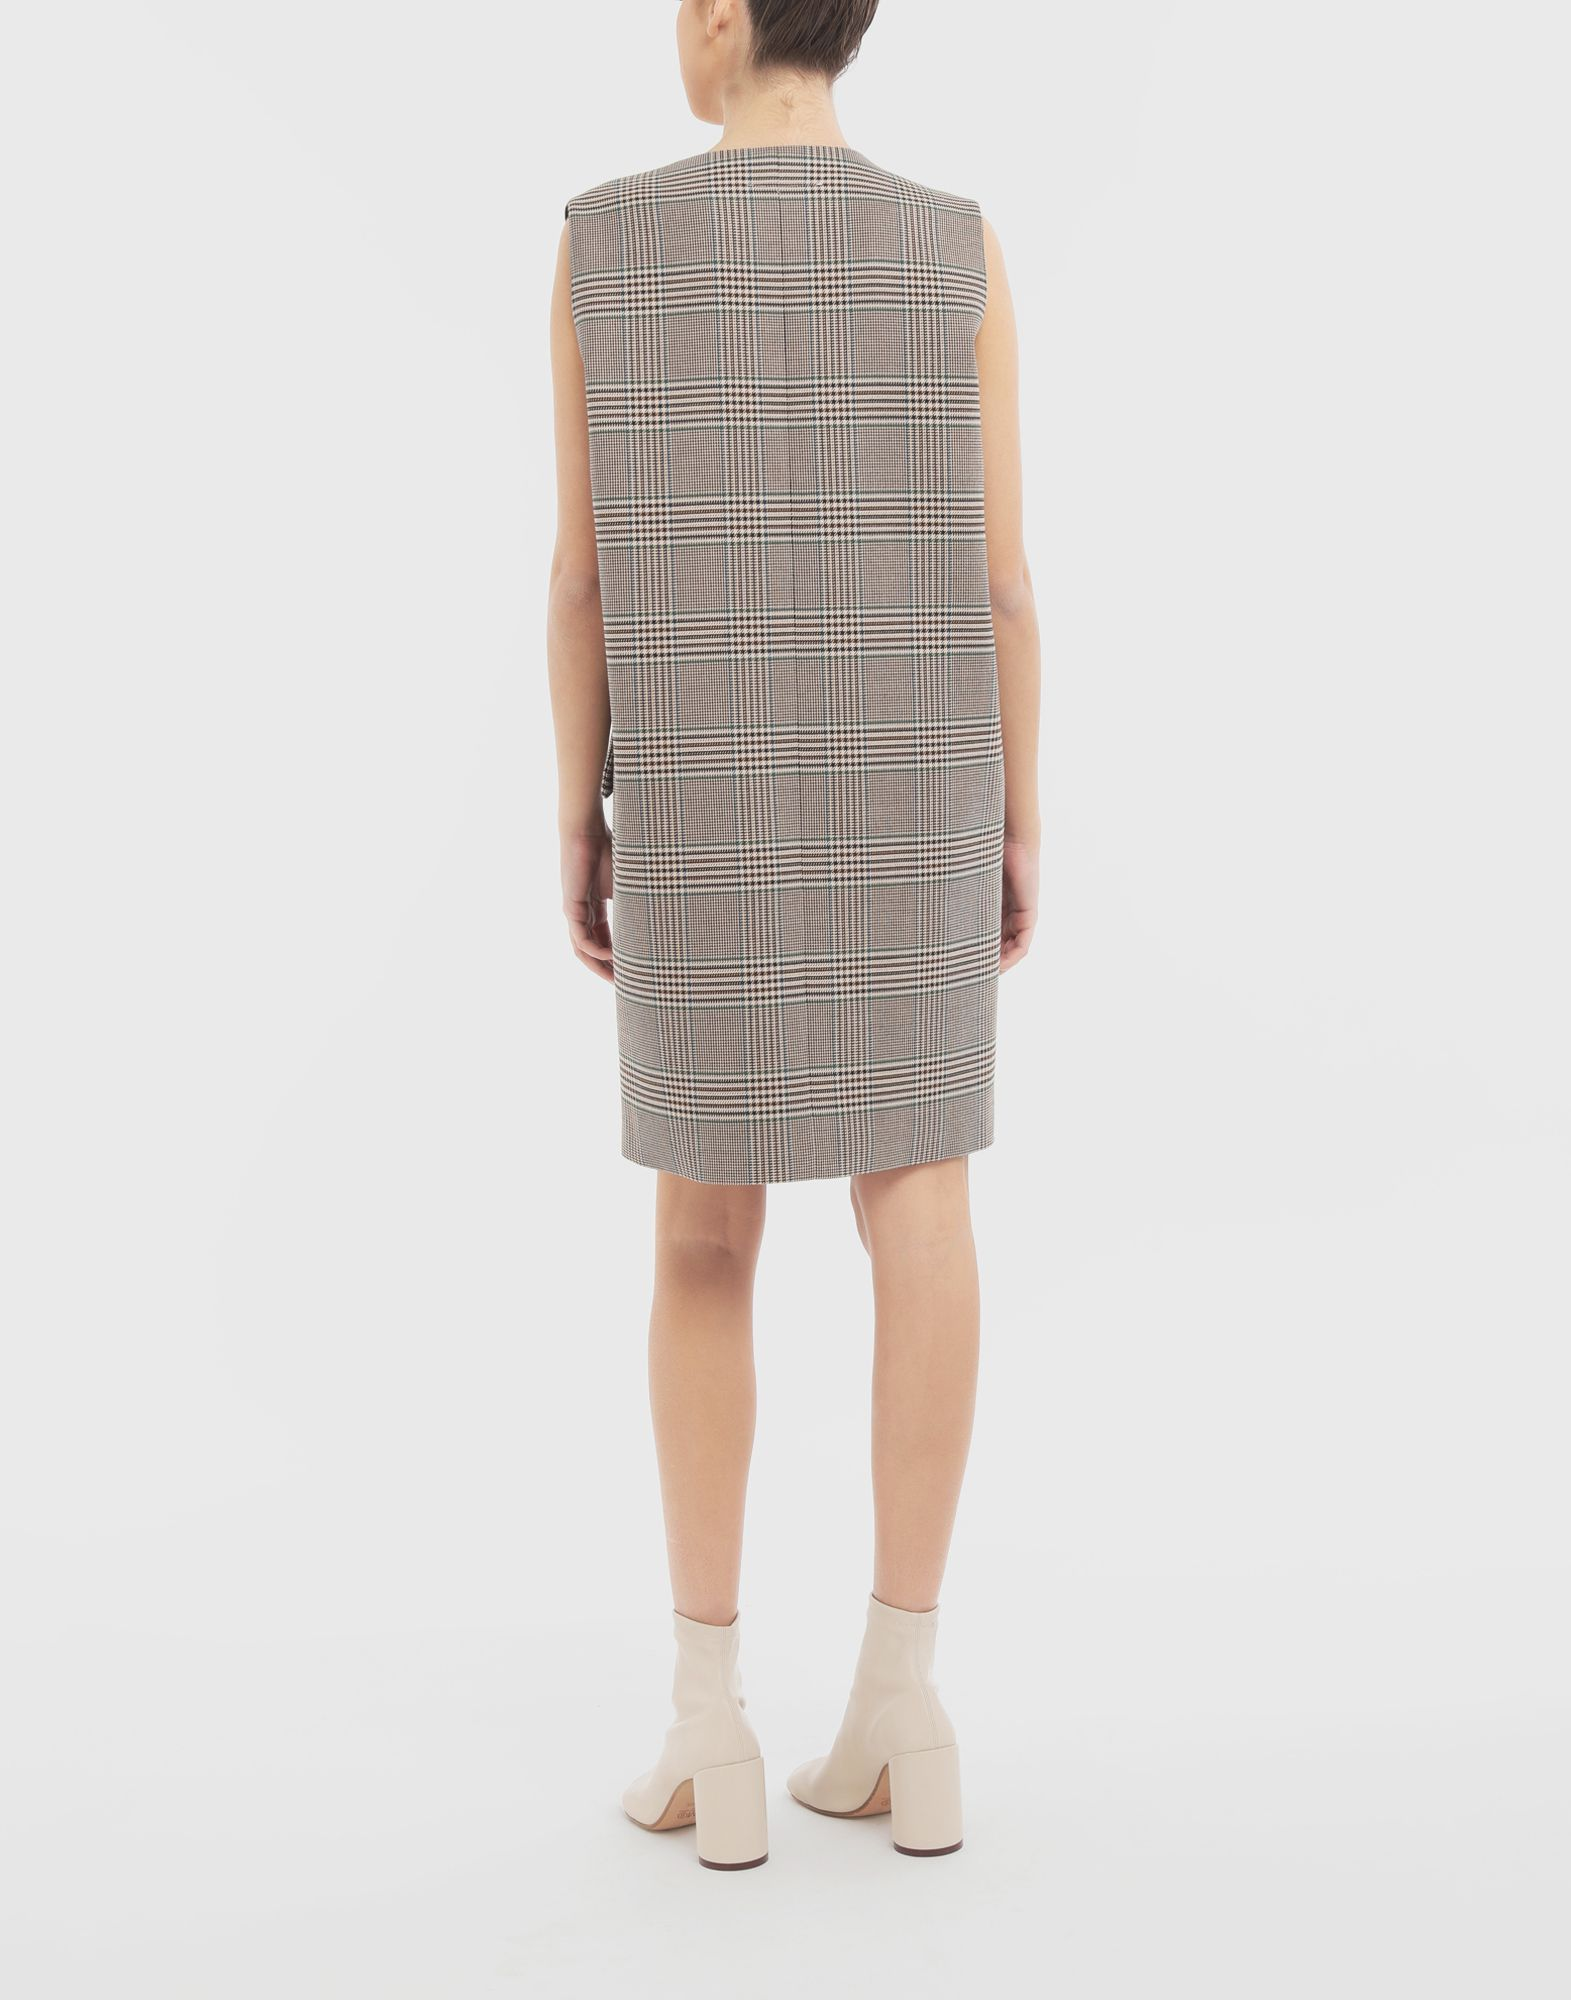 MM6 MAISON MARGIELA Checked décolleté dress Dress Woman e